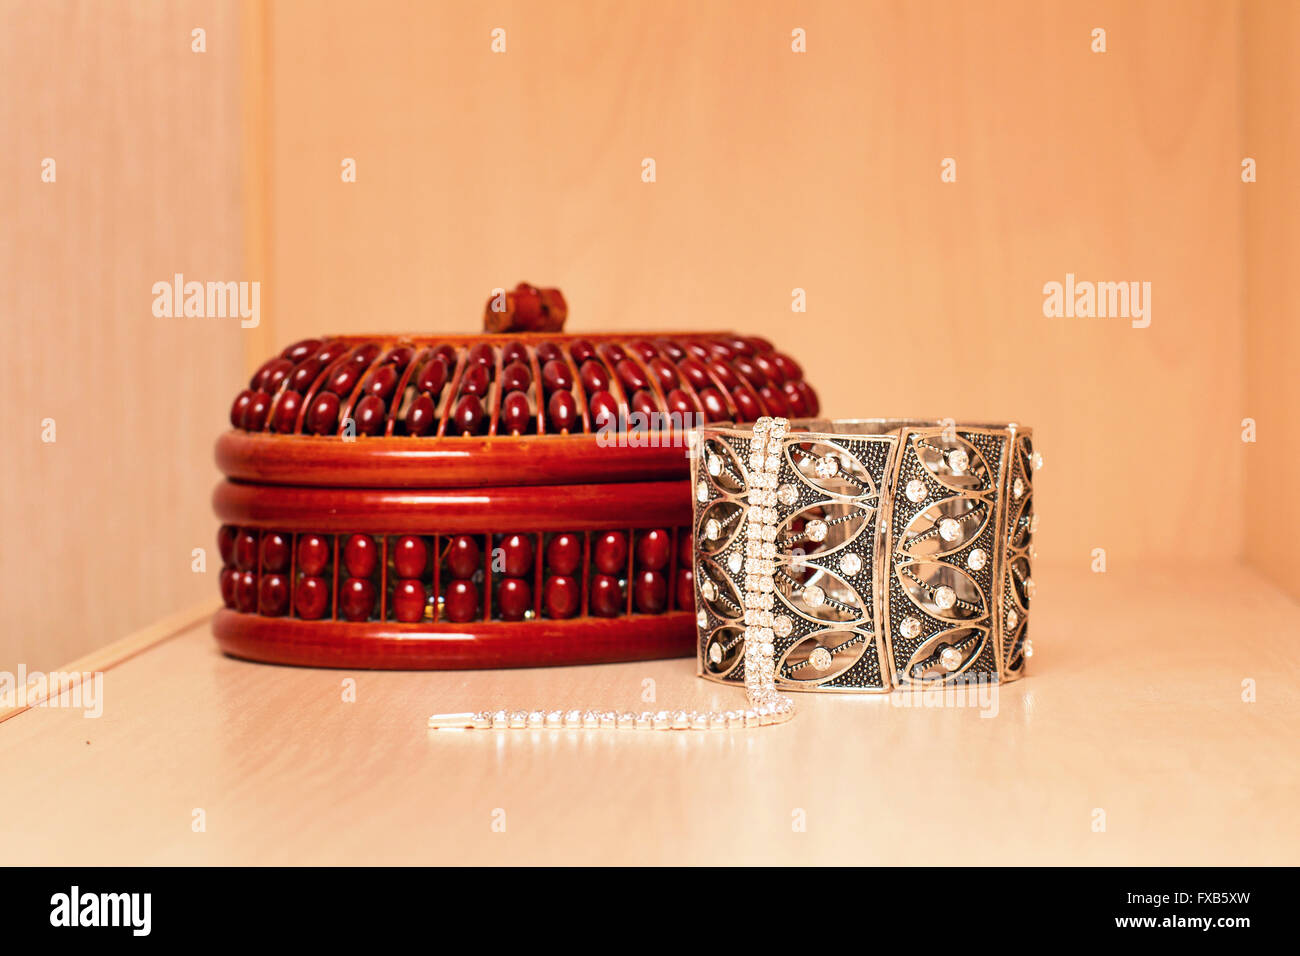 Handmade women's jewelry box with necklaces and metal bracelets - Stock Image